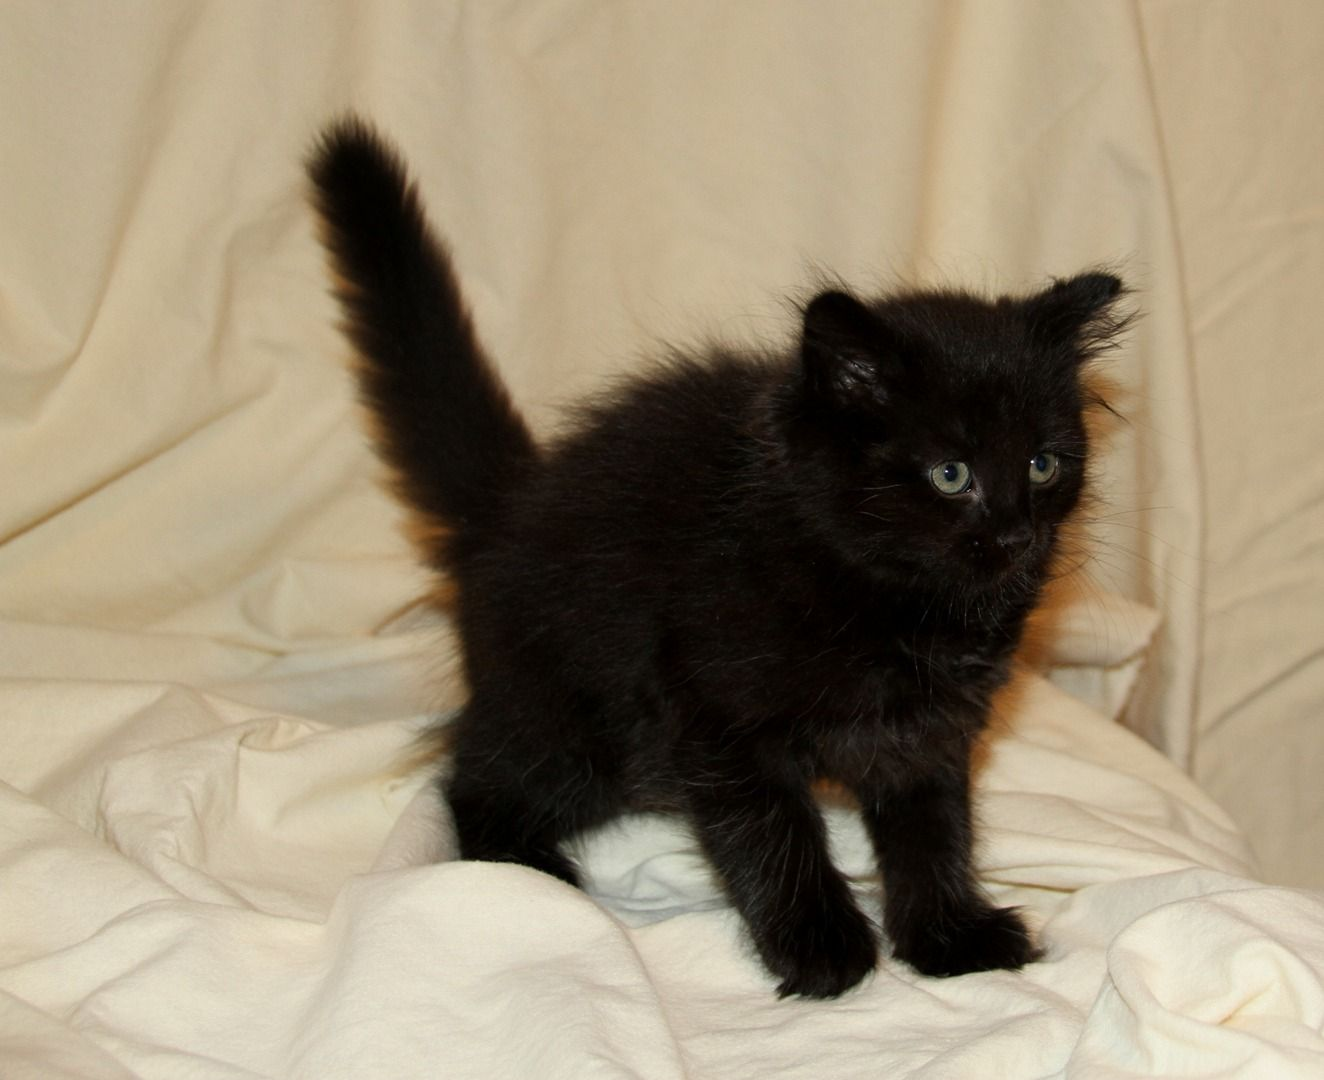 Siberians Kittens For Sale Hypoallergenic Cats Hypoallergenic Cats Siberian Cat Cats